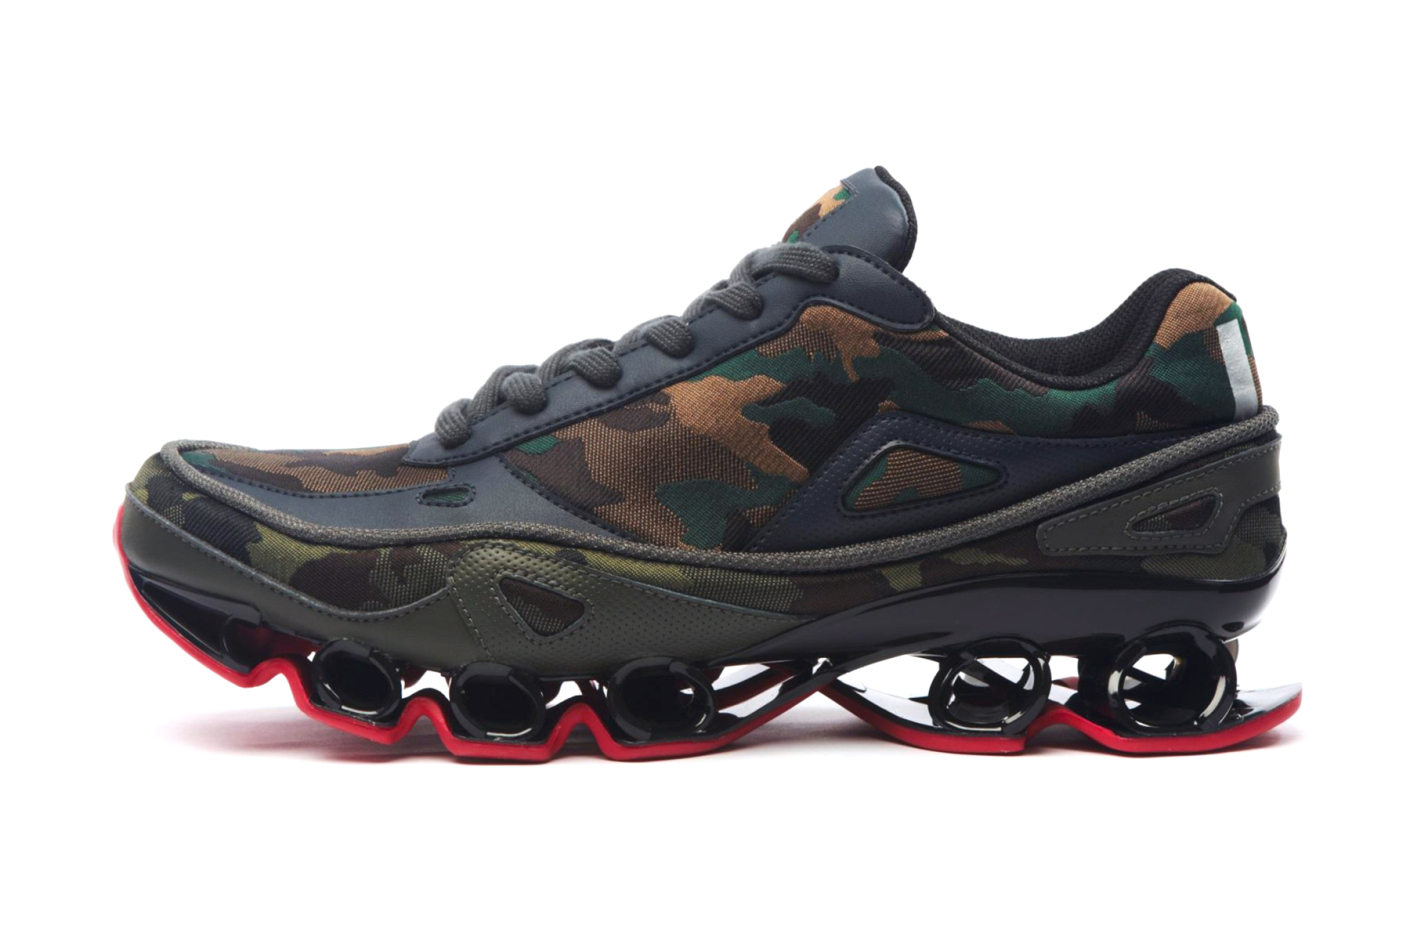 raf simons for adidas fall winter collection 5 Raf Simons for Adidas Fall/Winter 2014 Footwear Collection